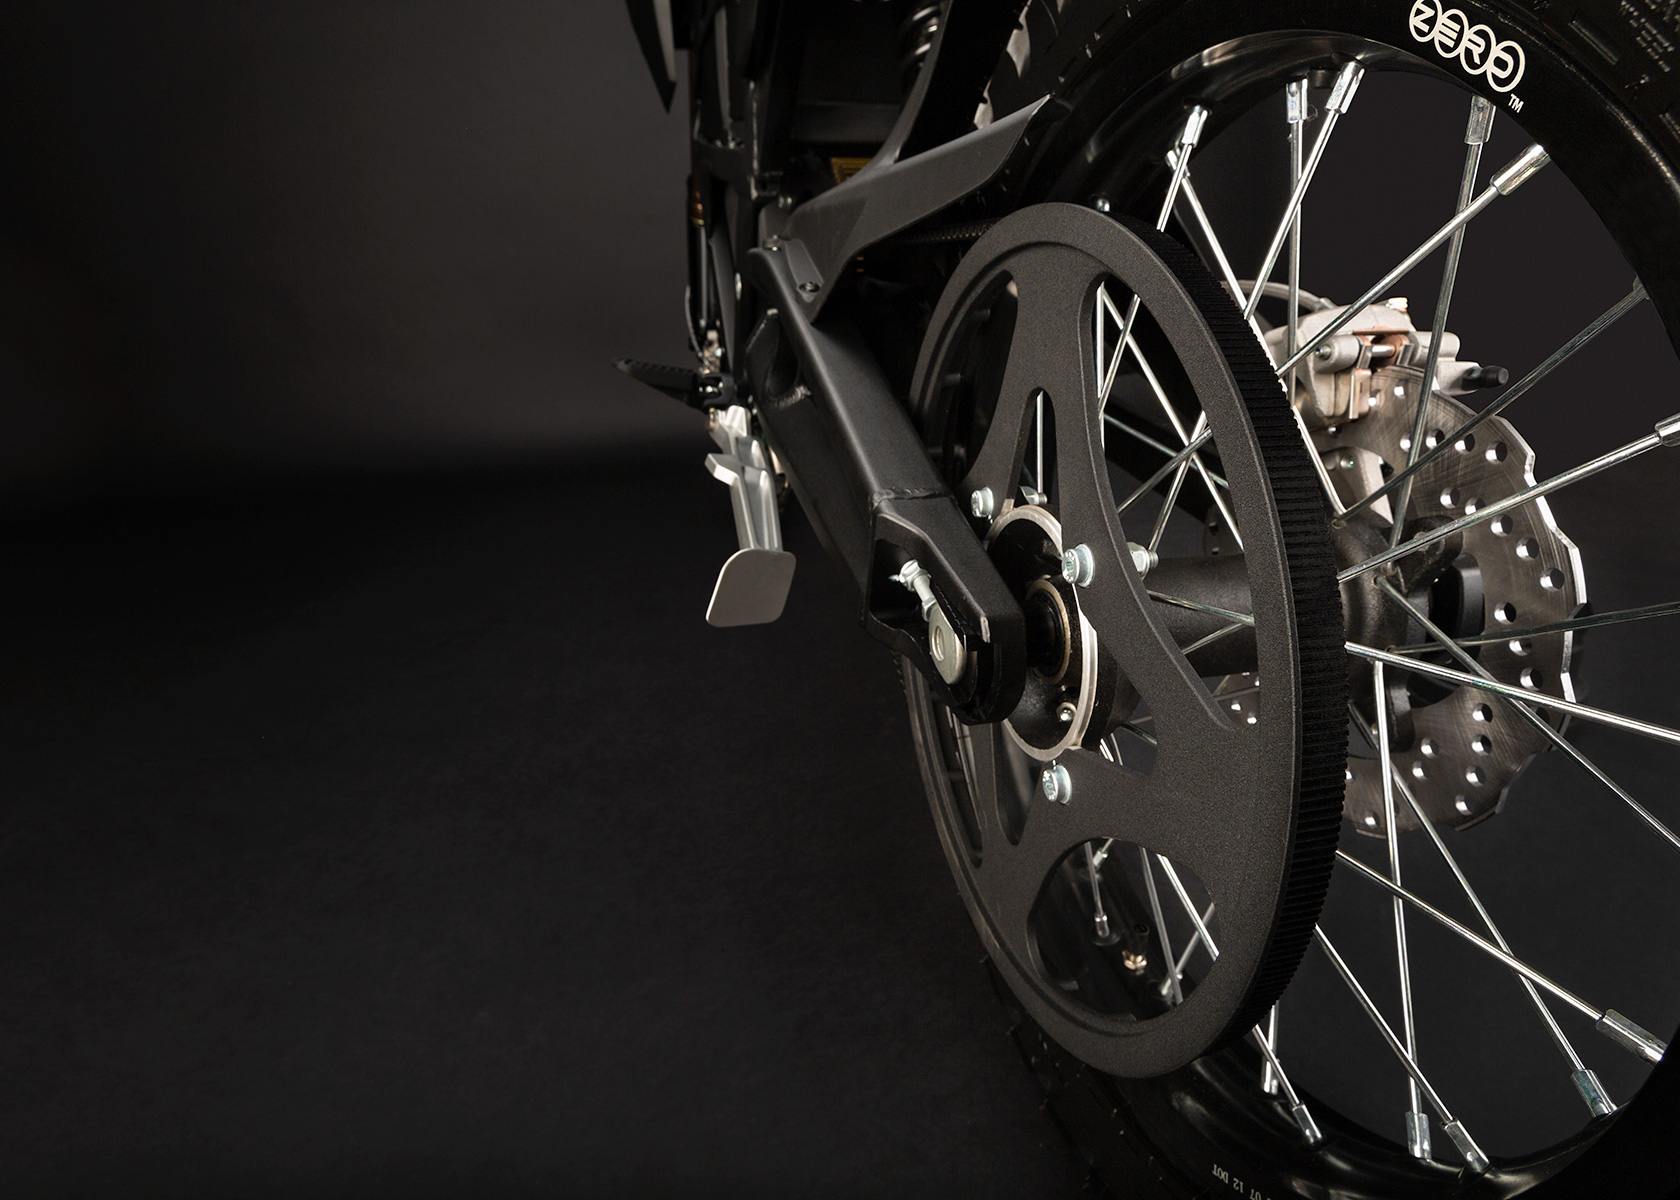 2013 Zero FX Electric Motorcycle: Belt Drive